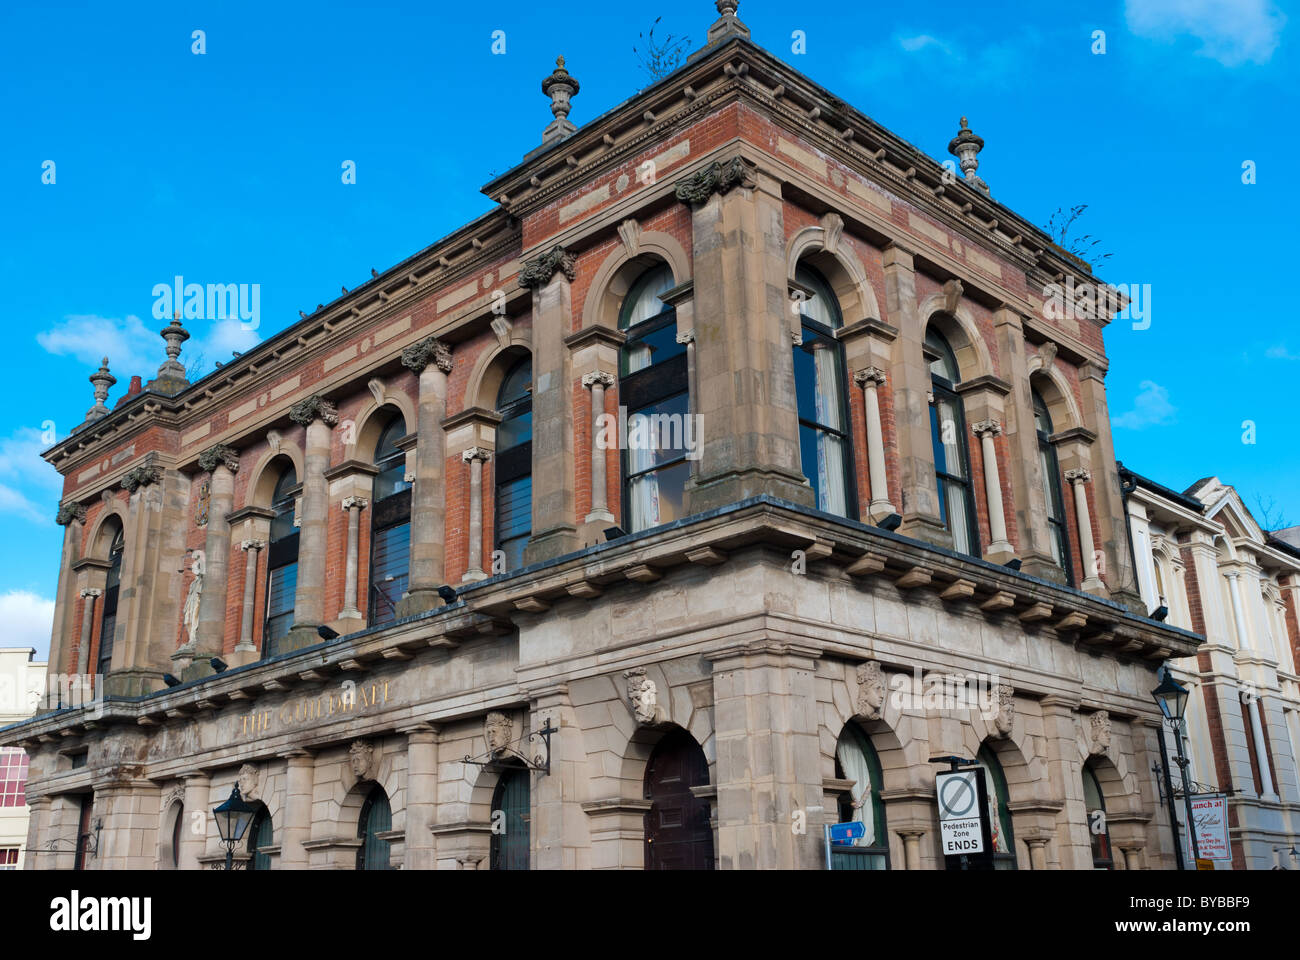 The Guildhall in Walsall Staffordshire UK - Stock Image